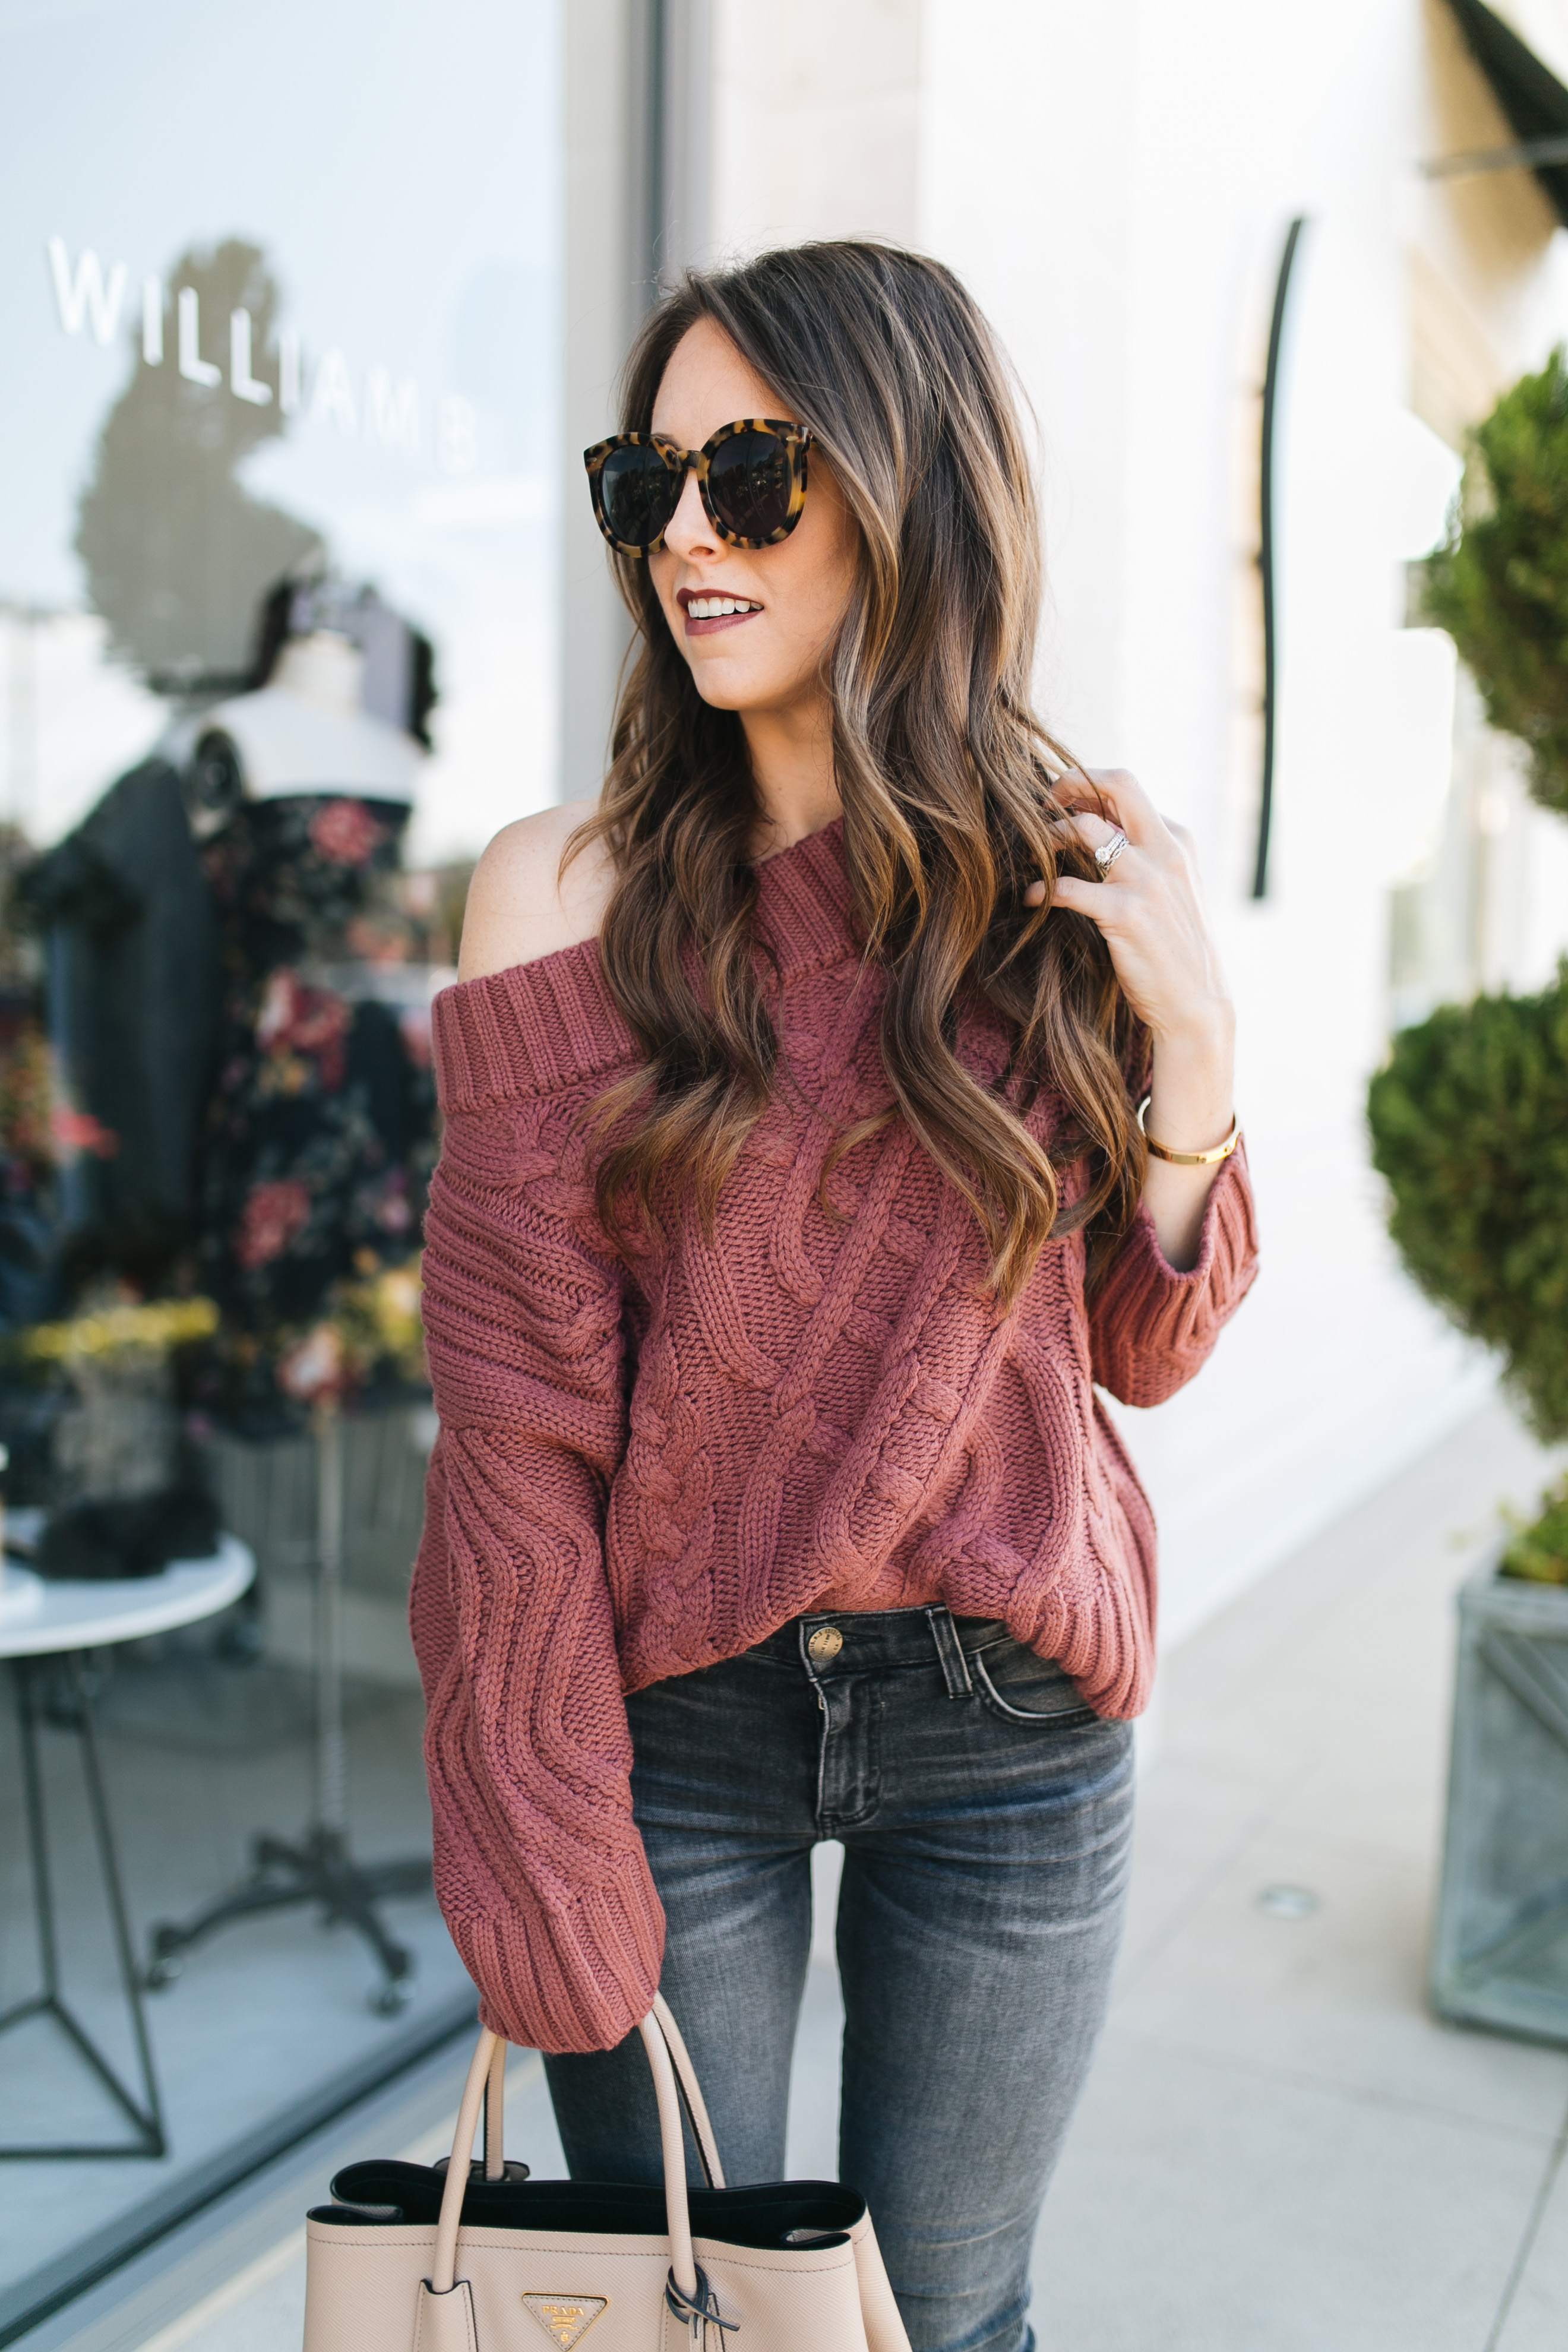 Fashion blogger daryl-ann denner styles a fall outfit with off-the-shoulder sweater and gray jeans